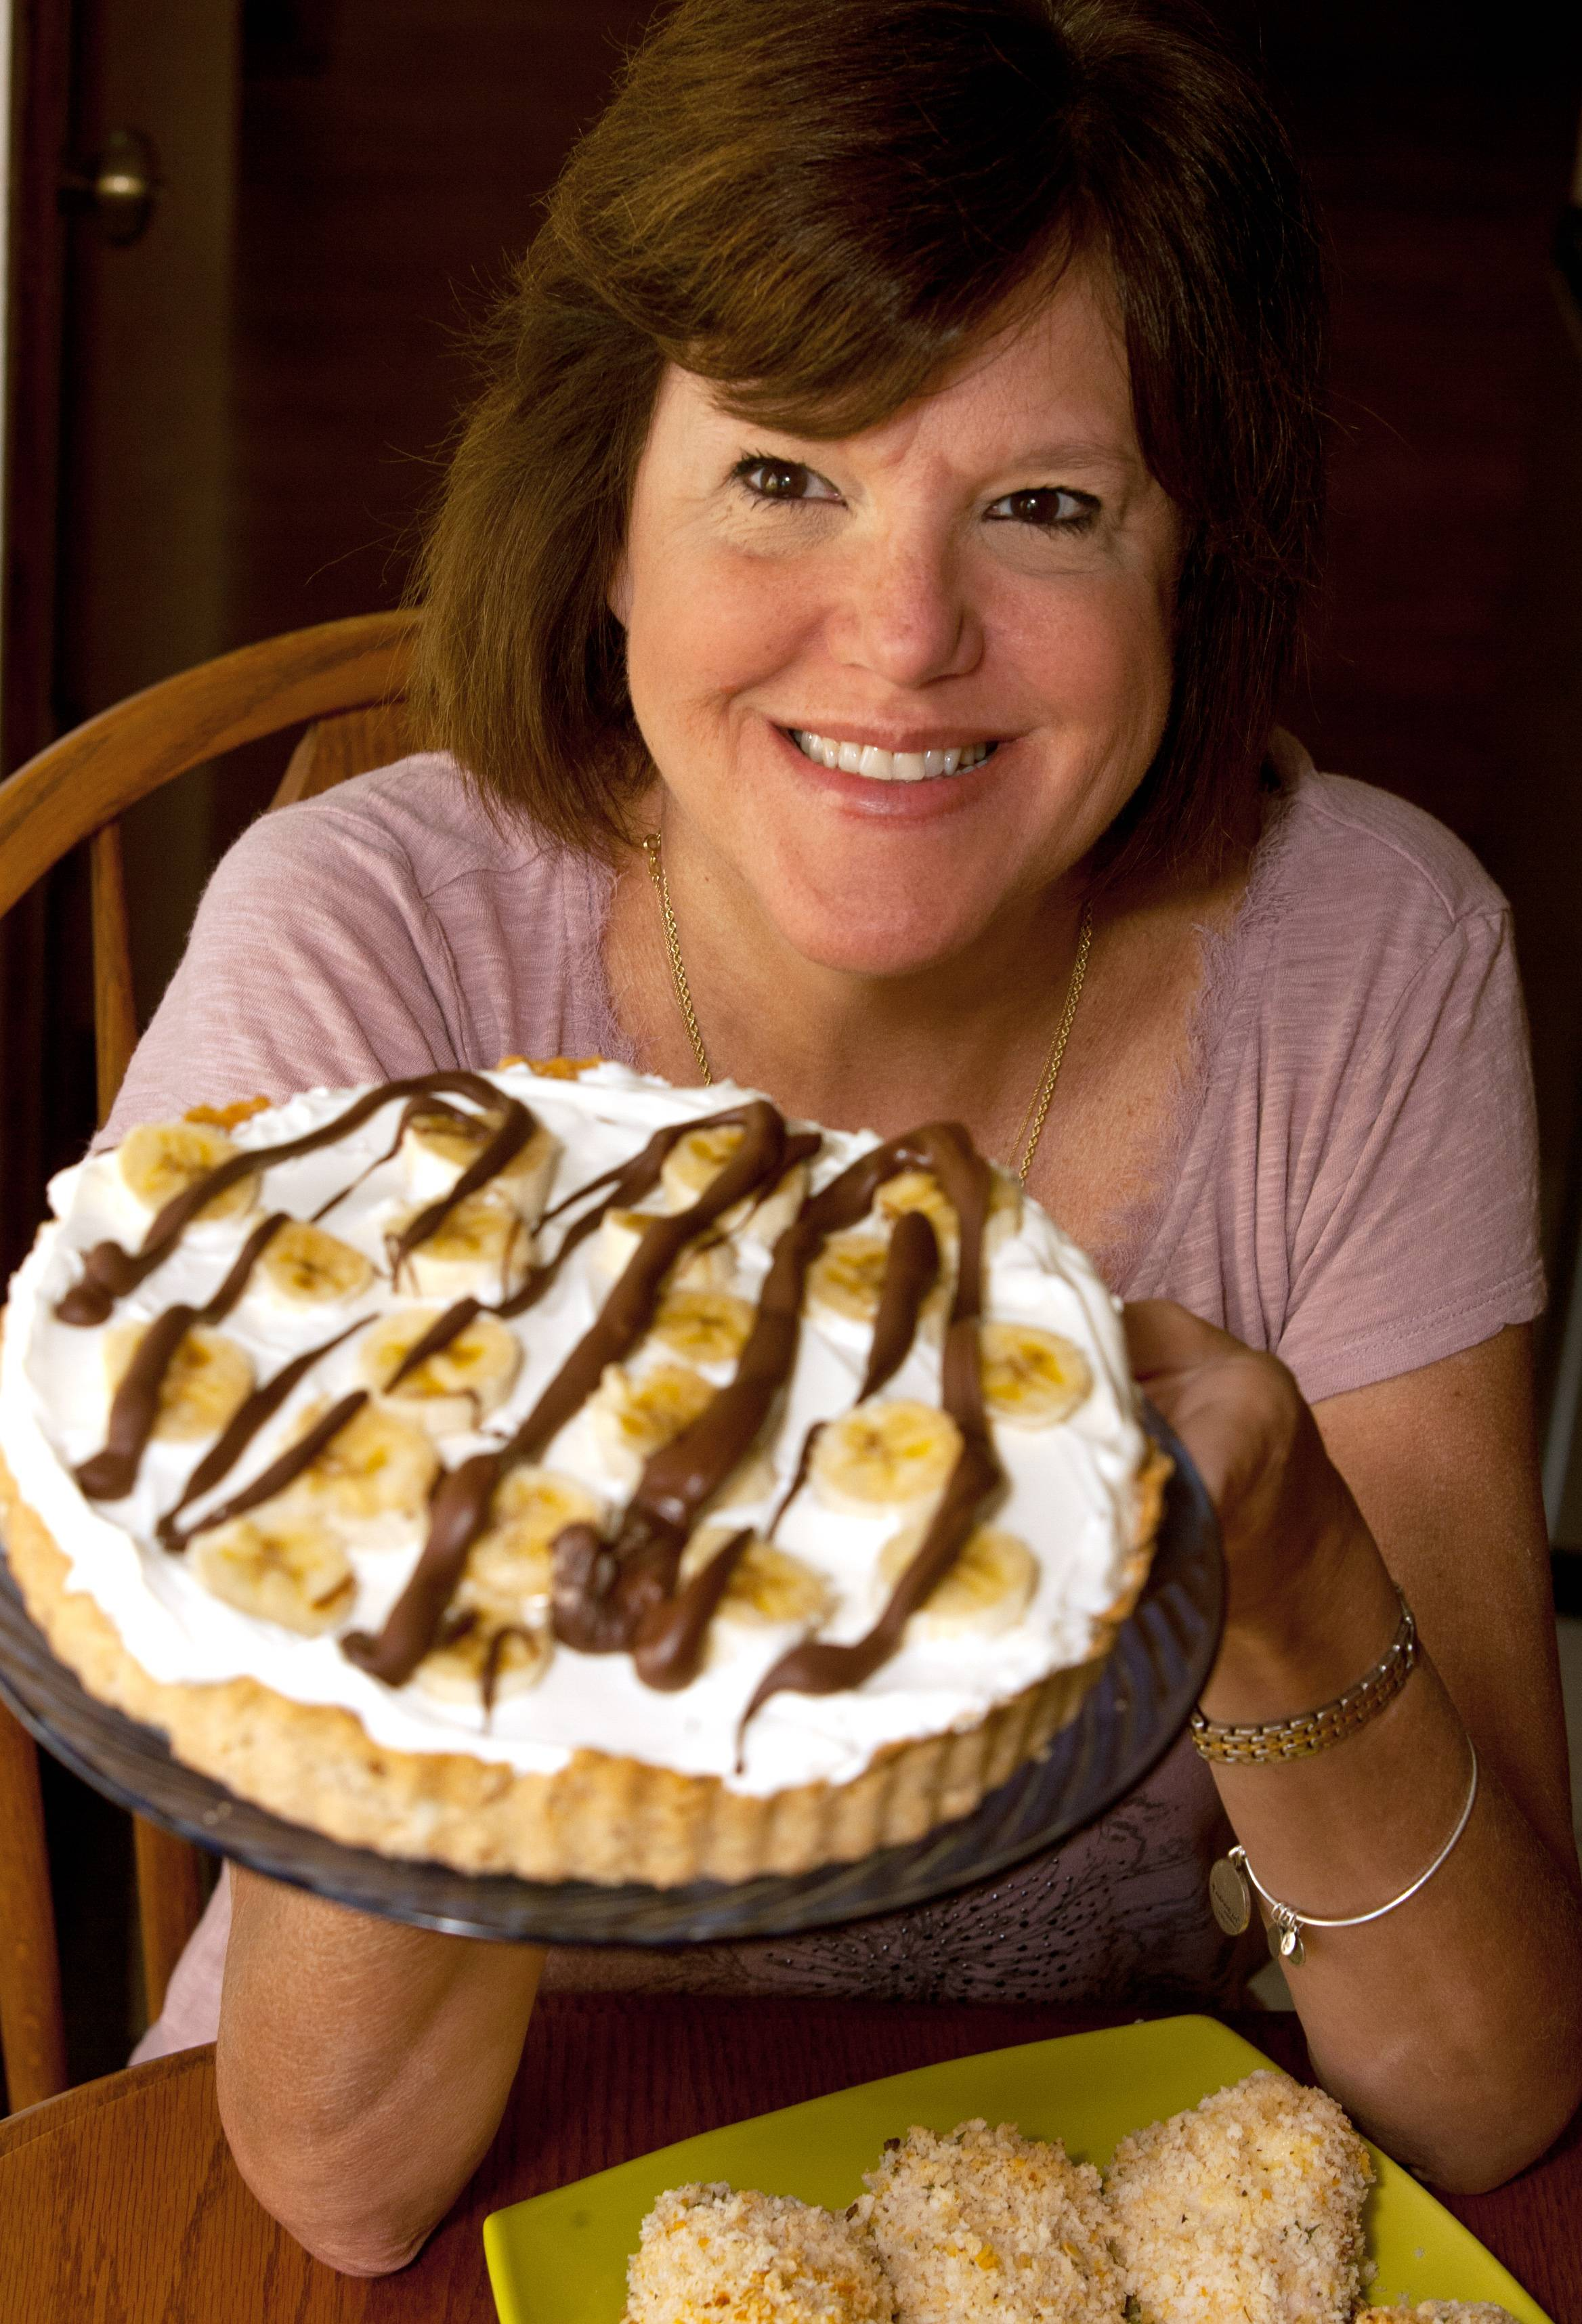 Making guests happy keeps Penny Kadlec of Wood Dale cooking. When Banana Caramel Pie is on her table they can't help but smile.